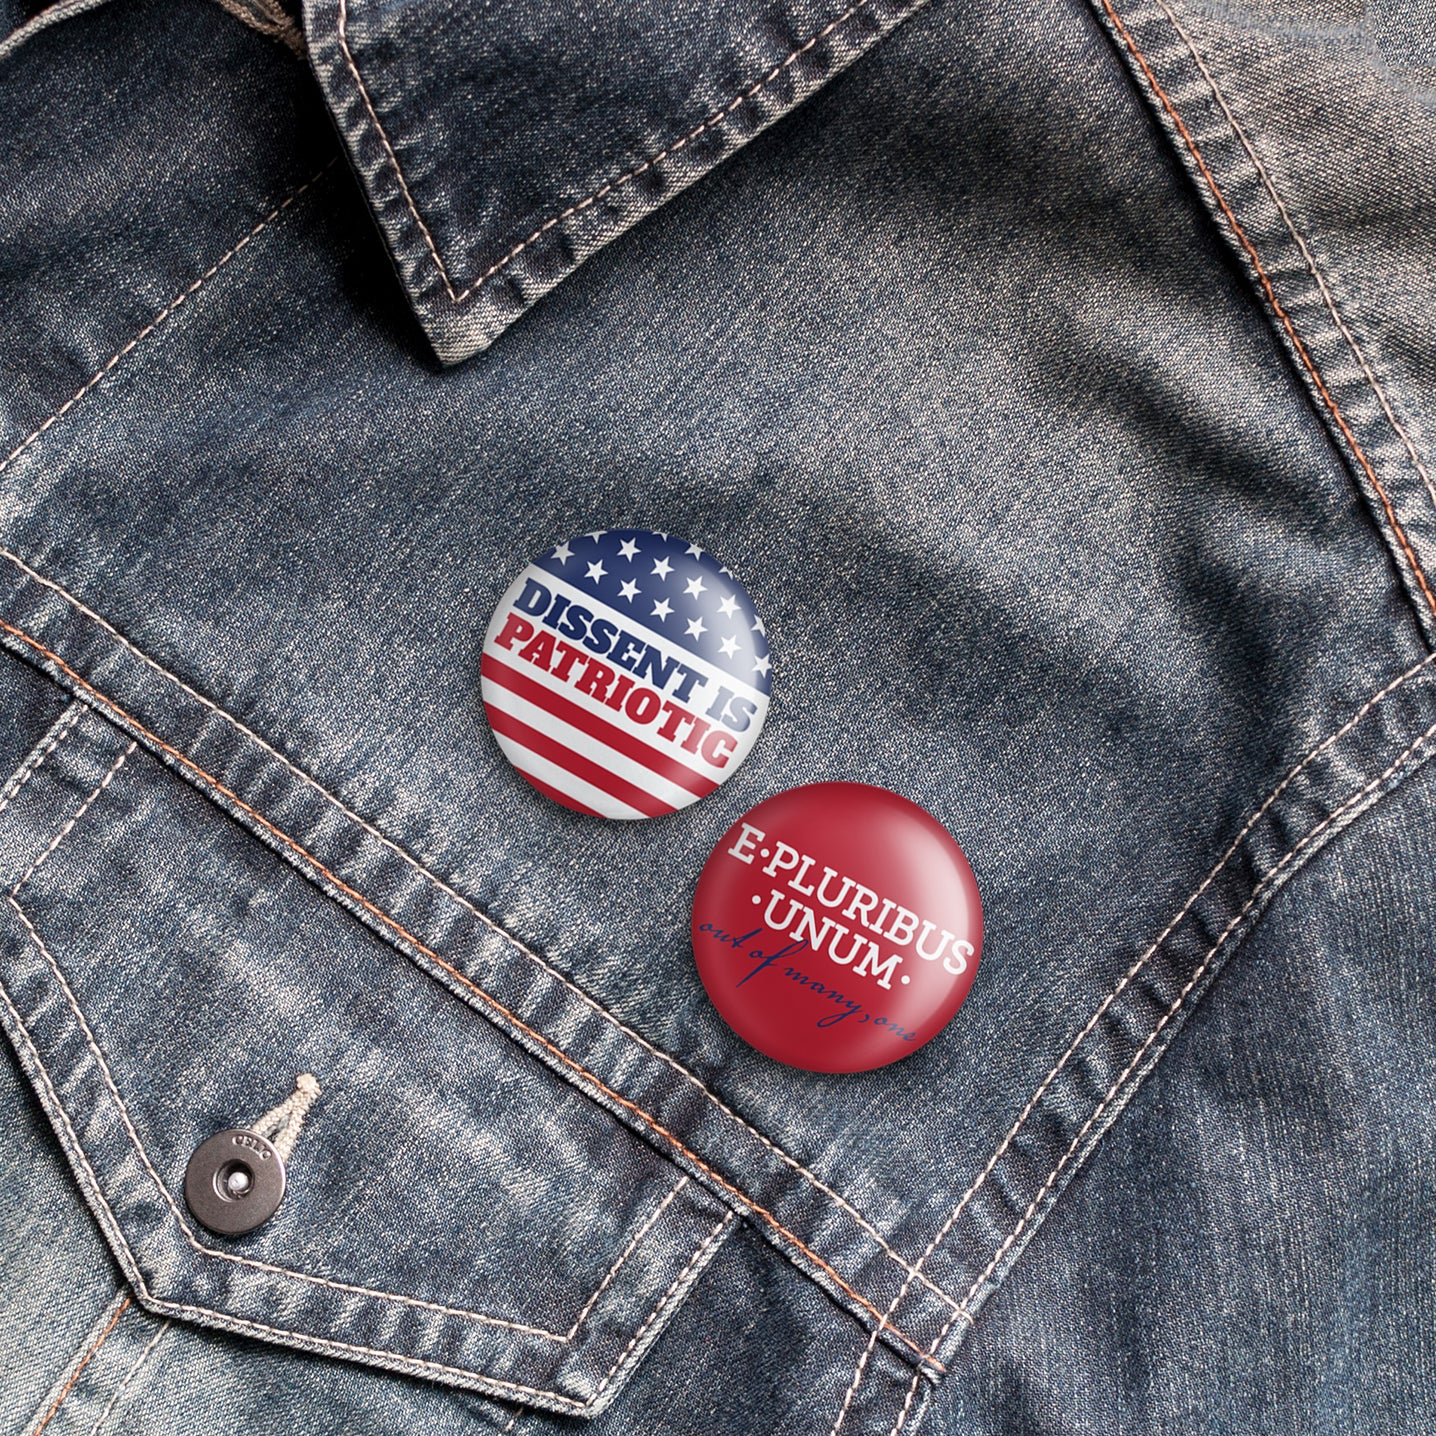 Liberal, Progressive, Dissent, E Pluribus: Buttons on denim jacket